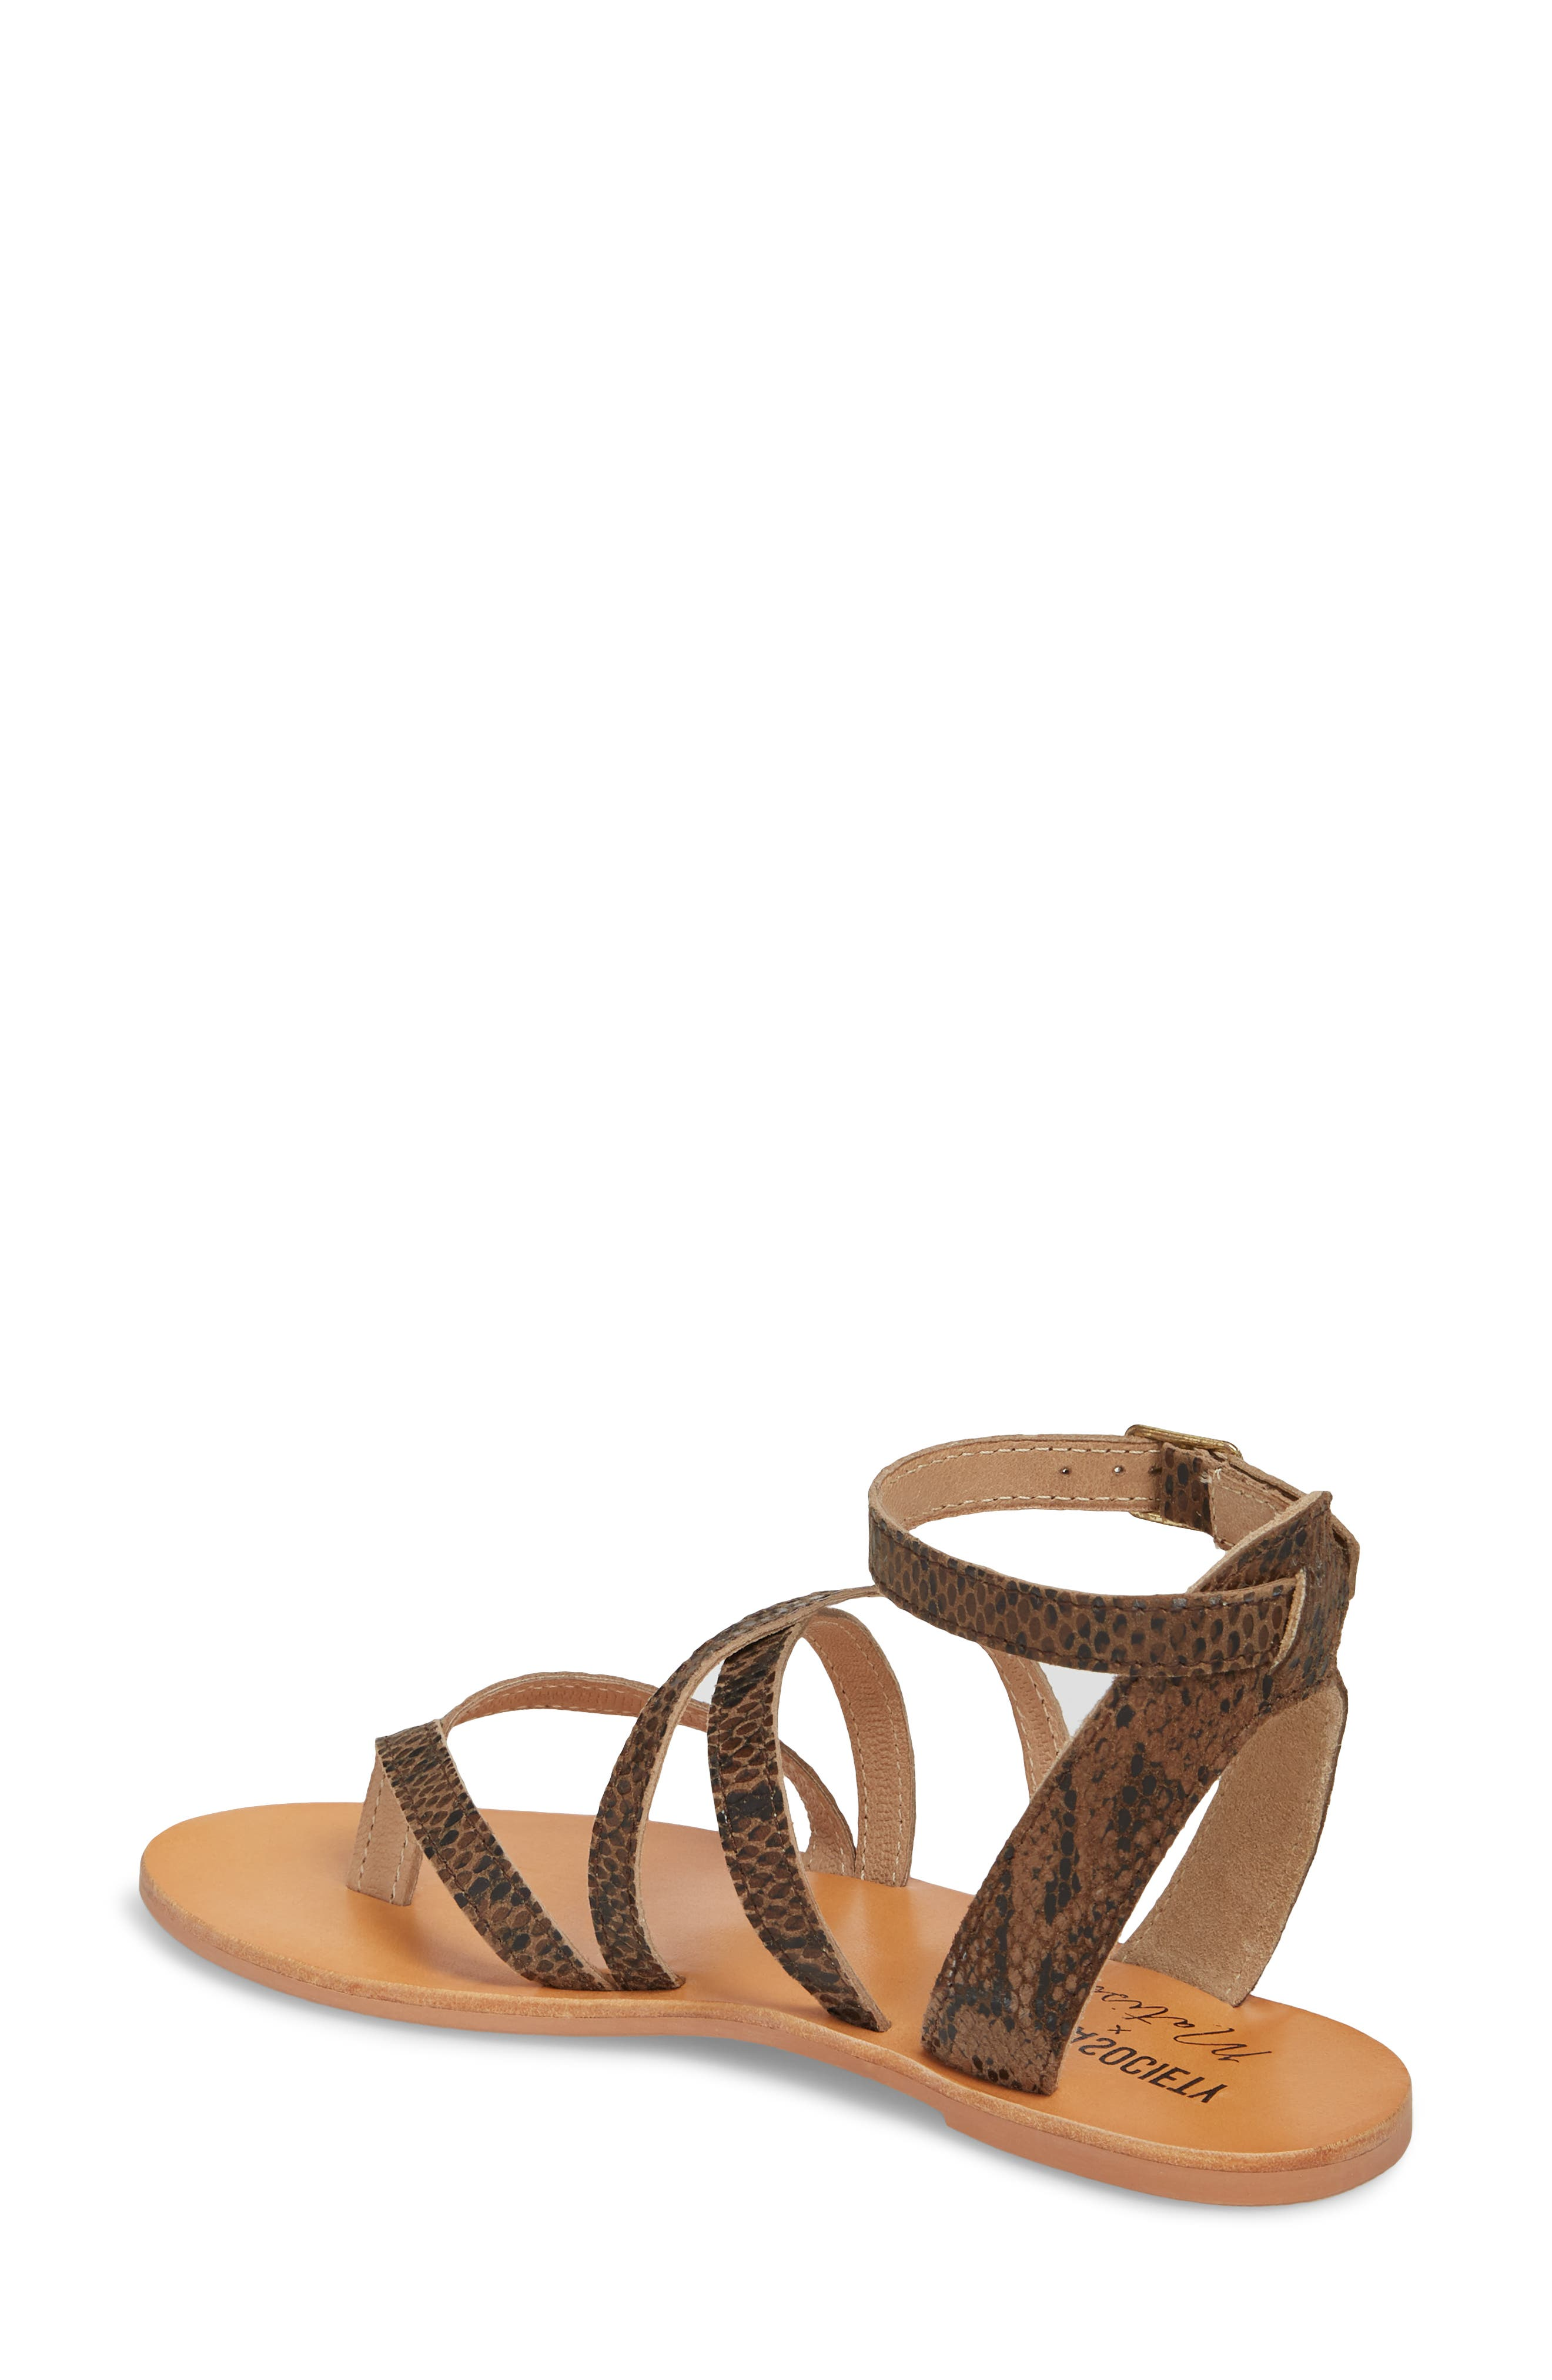 Strappy Sandal,                             Alternate thumbnail 2, color,                             Brown Snake Leather